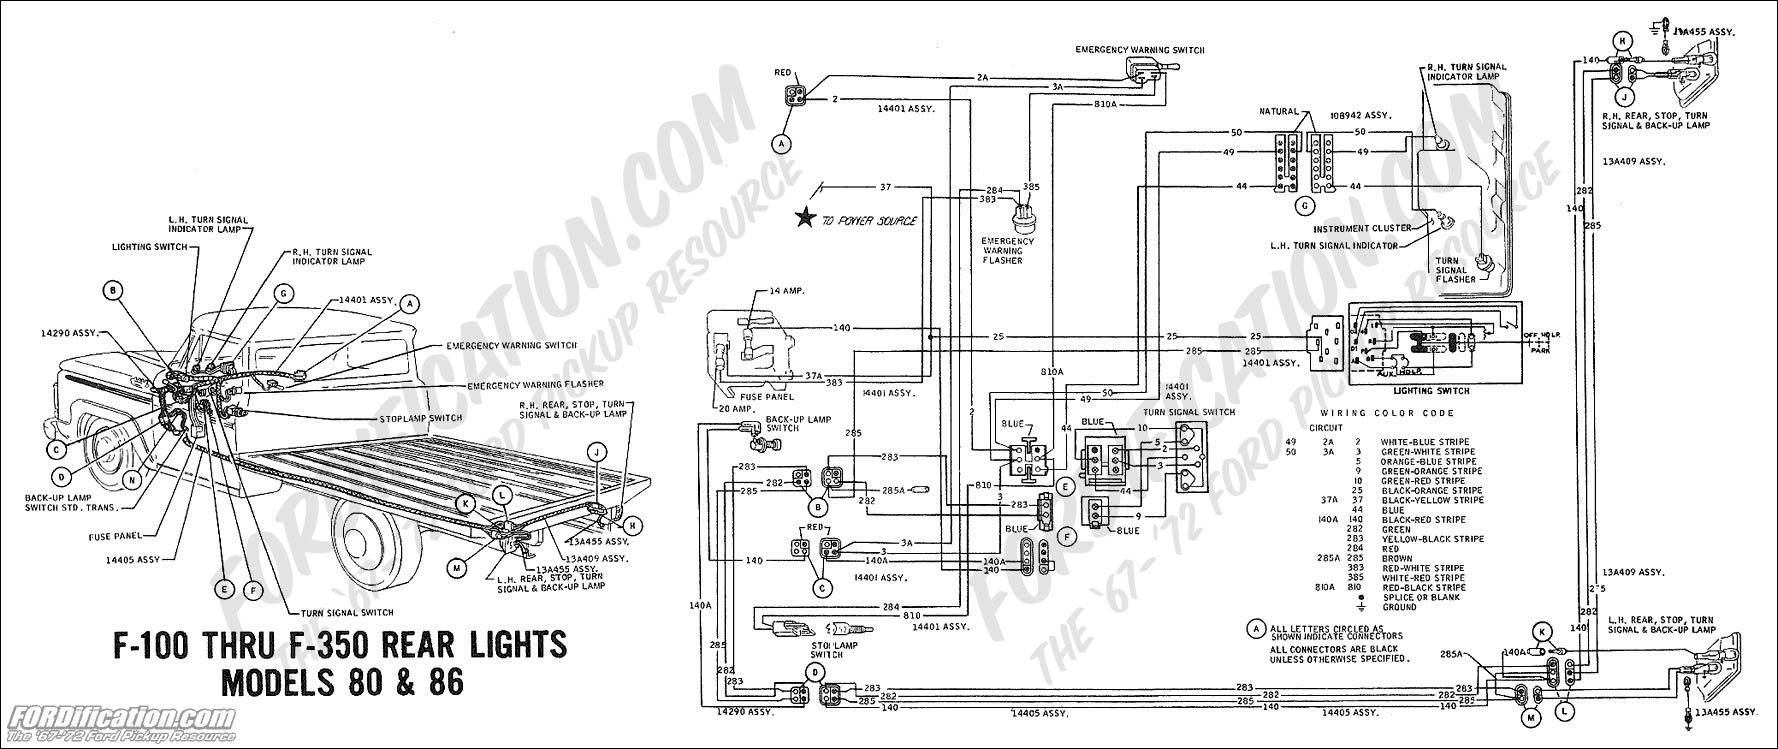 wiring_69rearlights mdls80 86 1994 f700 wiring diagram on 1994 download wirning diagrams 1979 Corvette Fuse Box Diagram at crackthecode.co